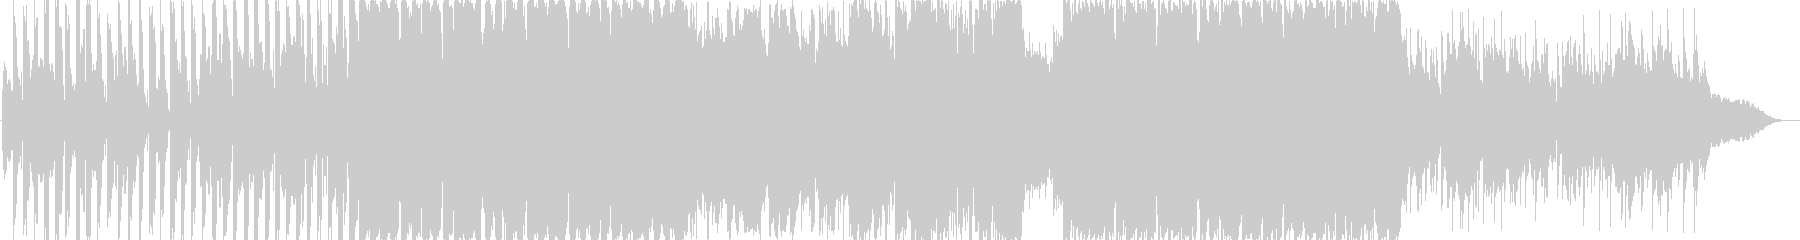 Japanese EDM Song (Uptempo)'s unreproduced waveform